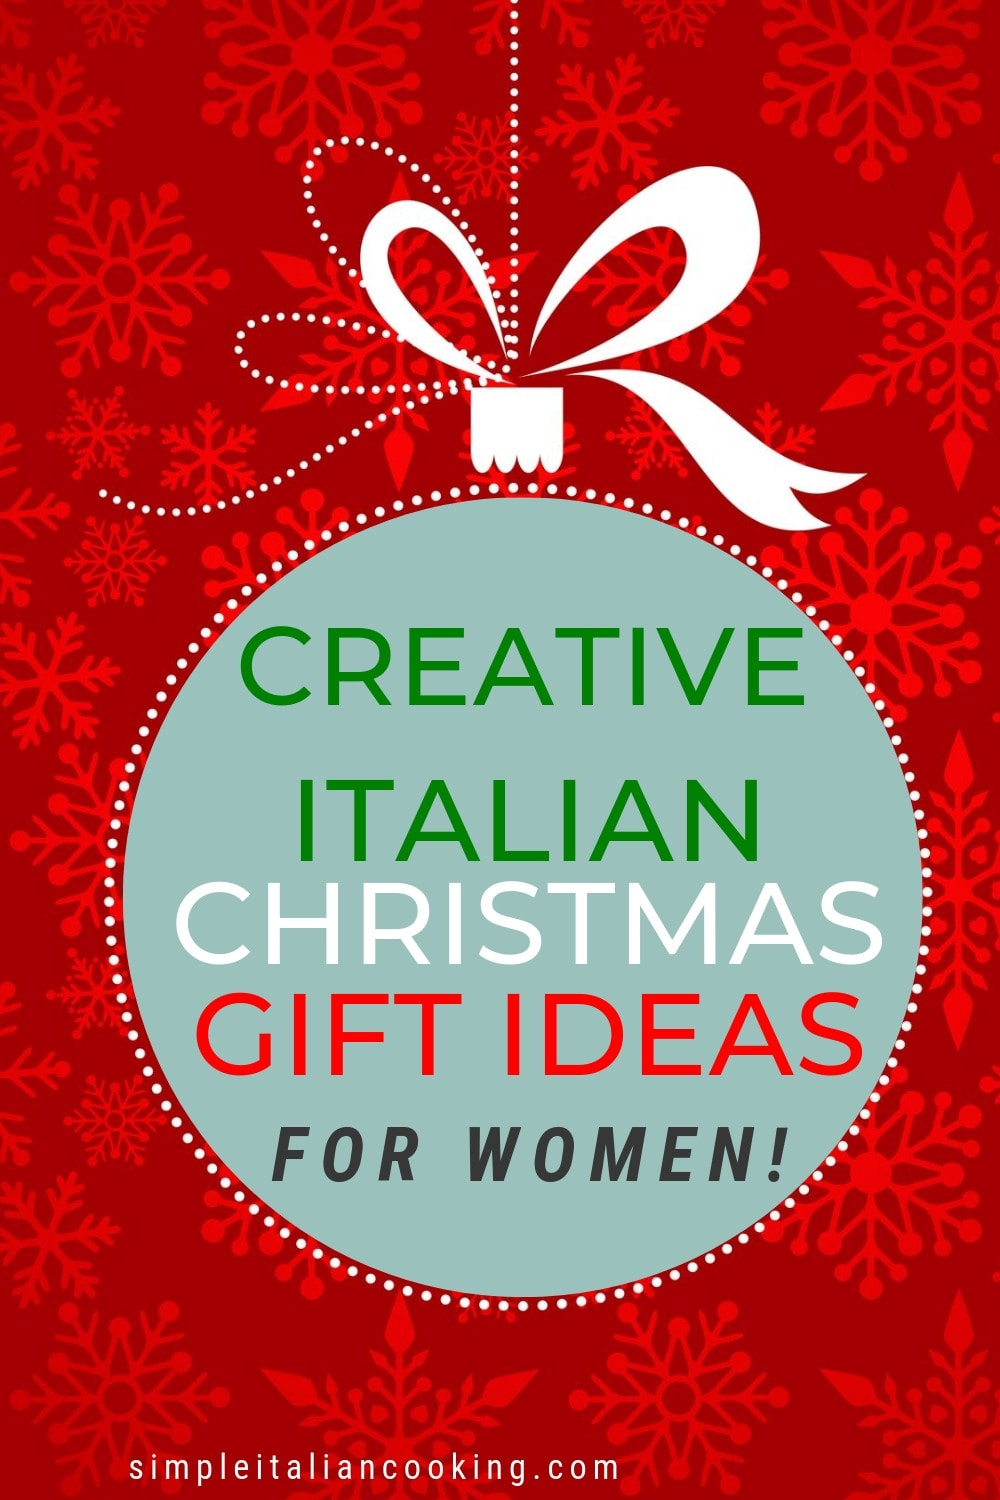 Creative and unique Italian gift ideas for the special women in your life! Whether your wife, girlfriend, mother or even sisters, here are some Italian-inspired ideas perfect for Christmas! #italiangiftideas #italiangiftsforher #italiangifts #italianchristmasgifts #christmasgiftsforher